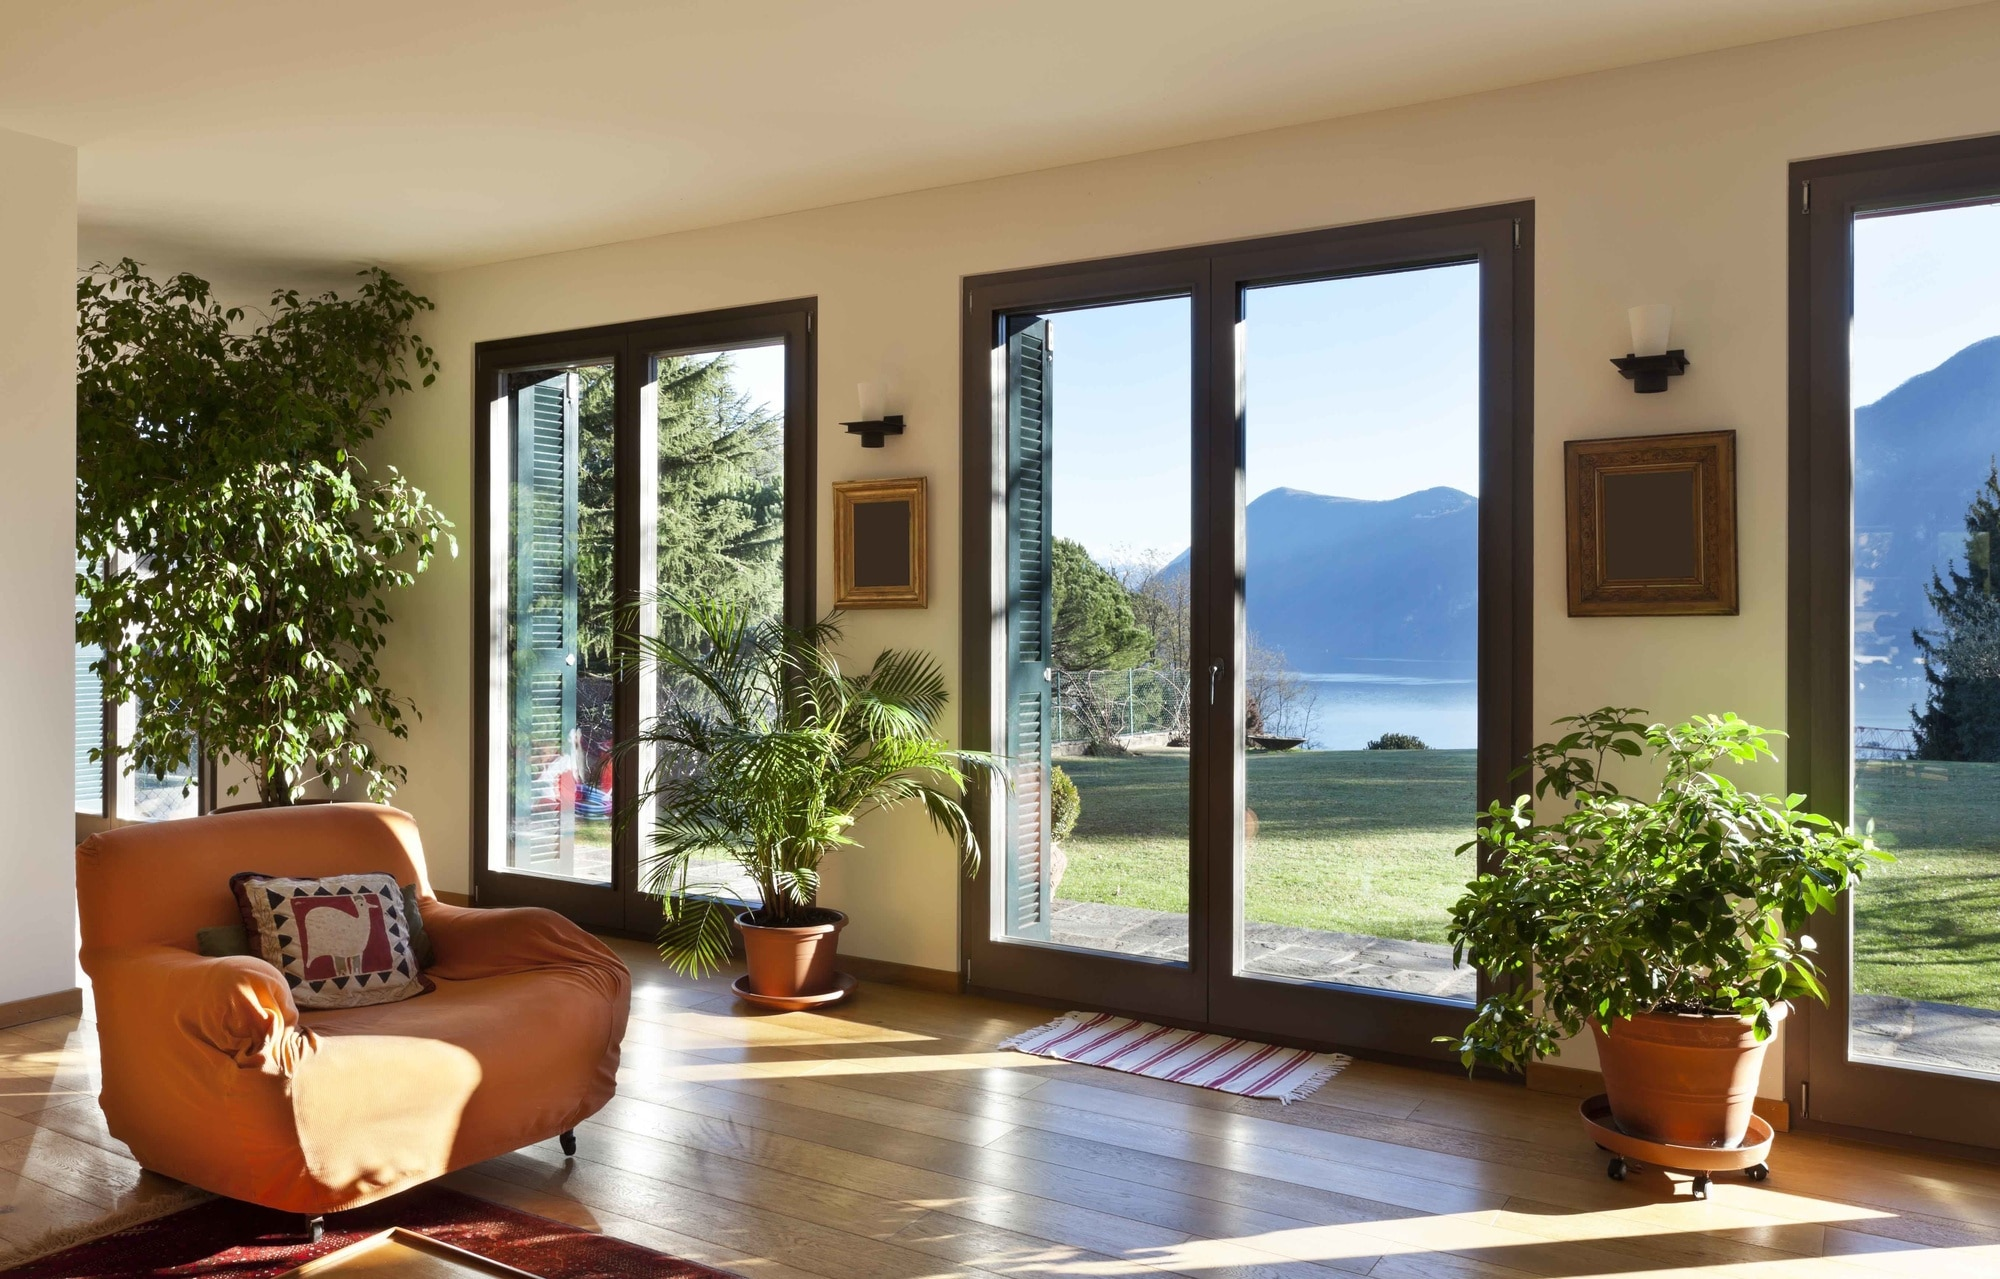 replacement windows for Home Value